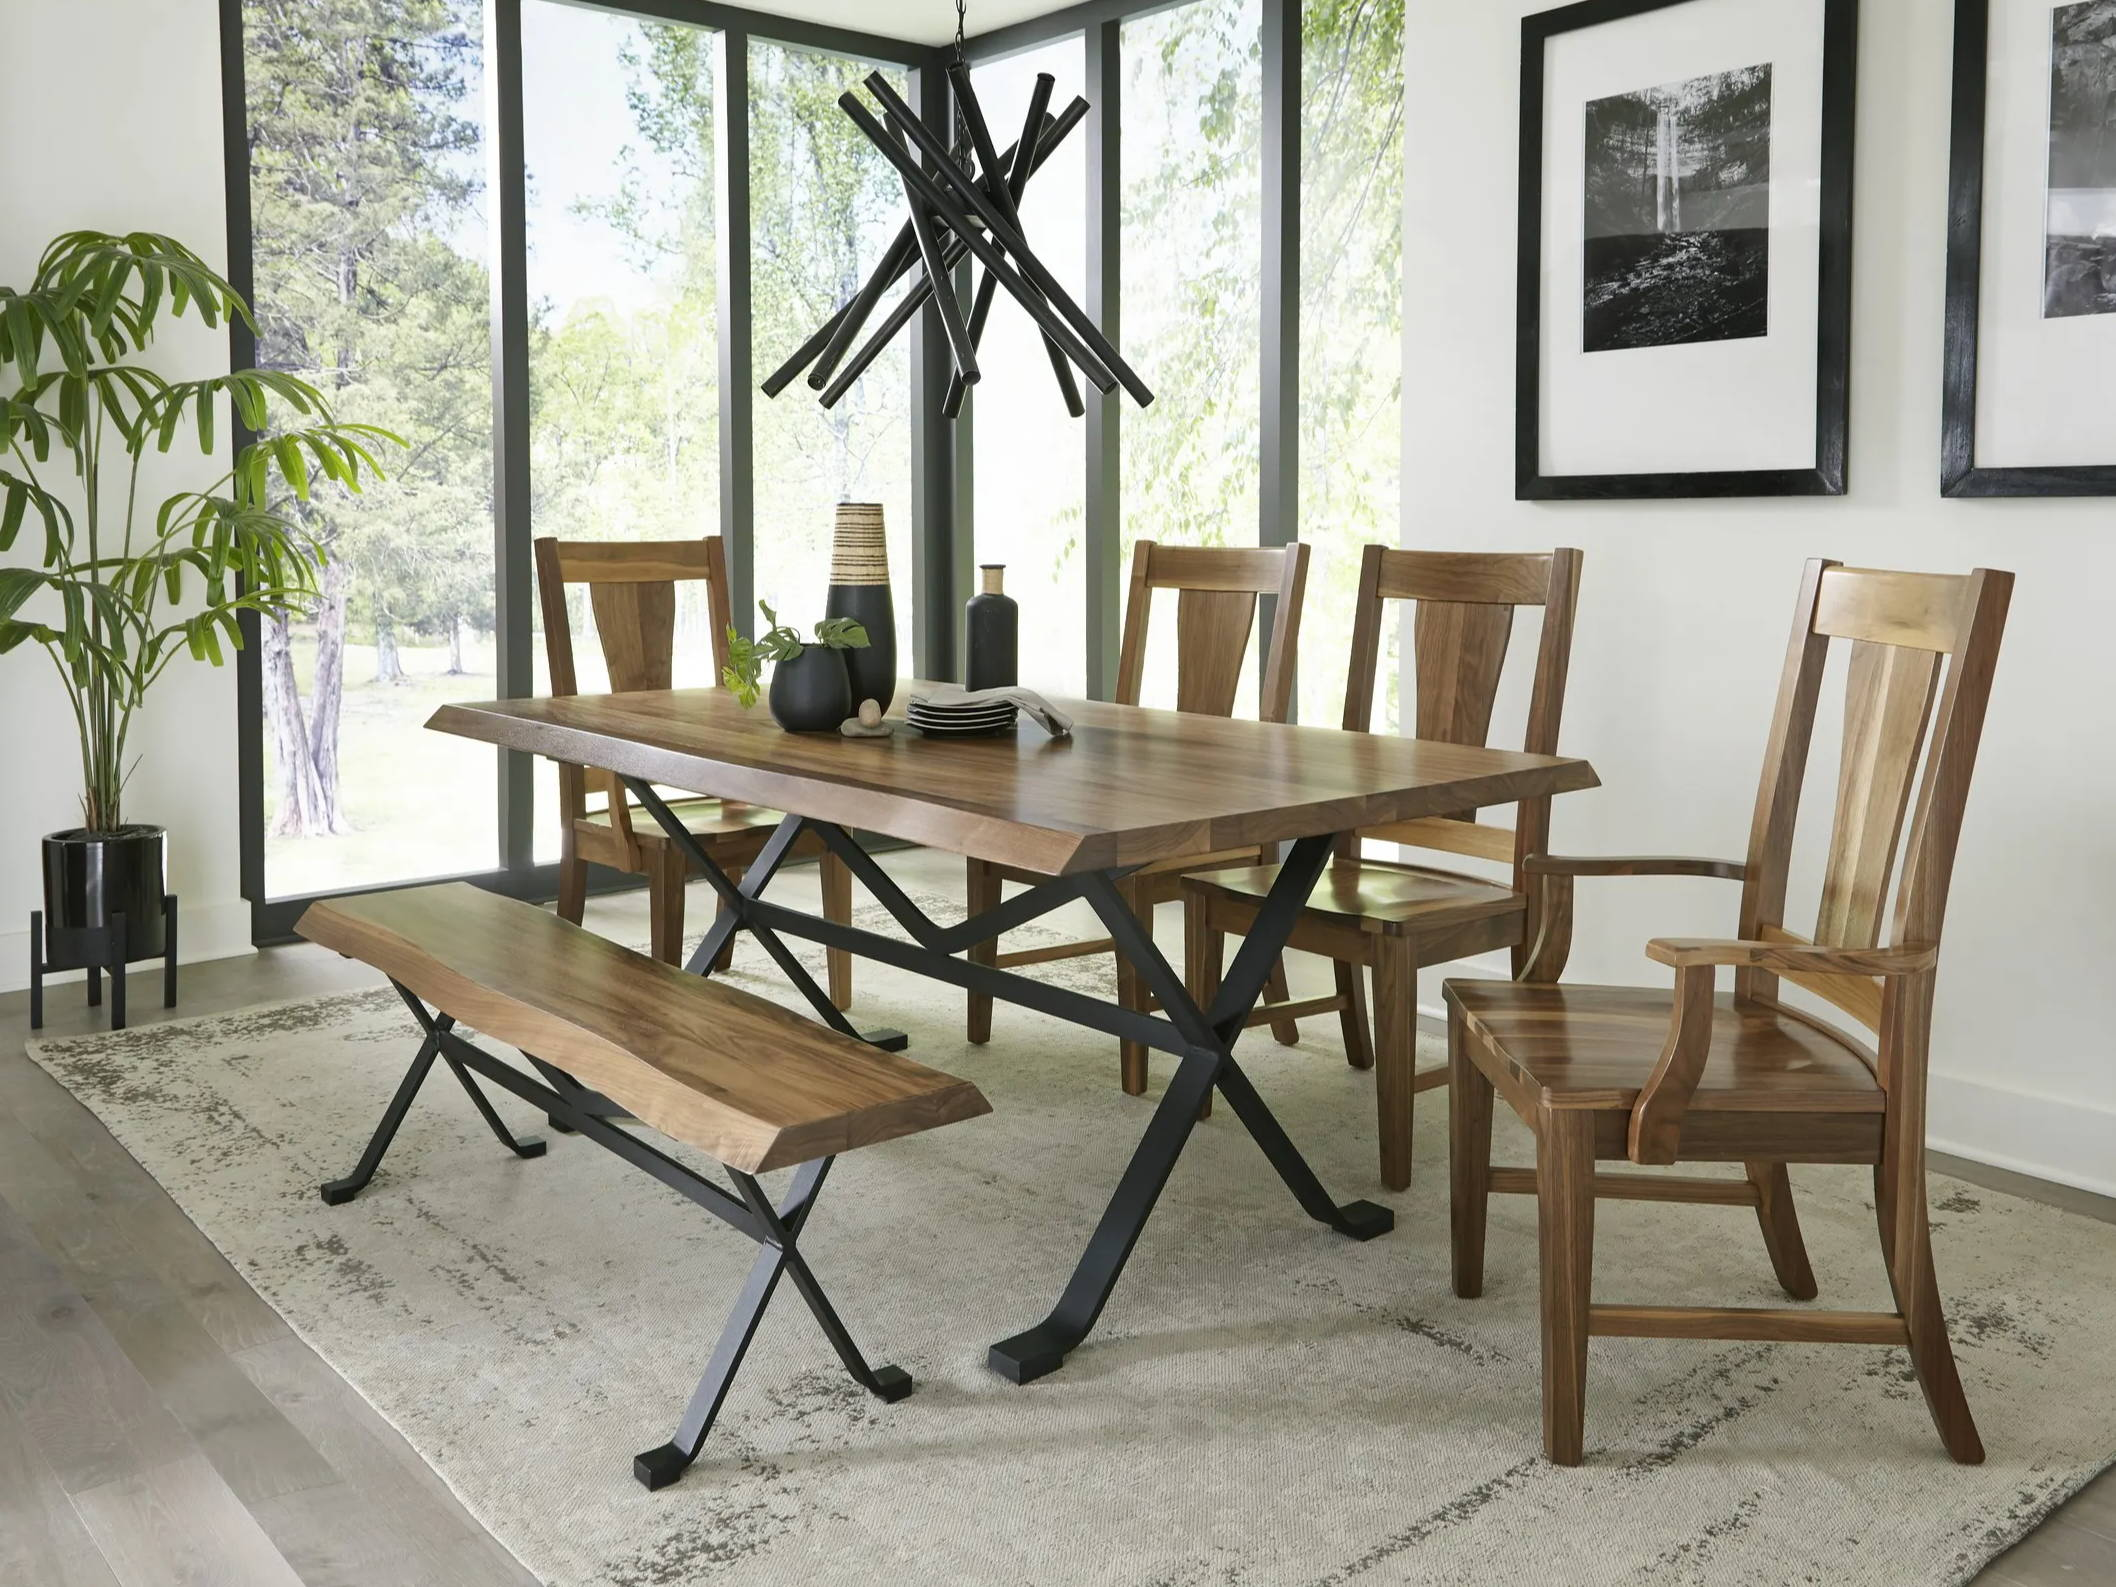 dining table with live edge and match bench with dining chairs around